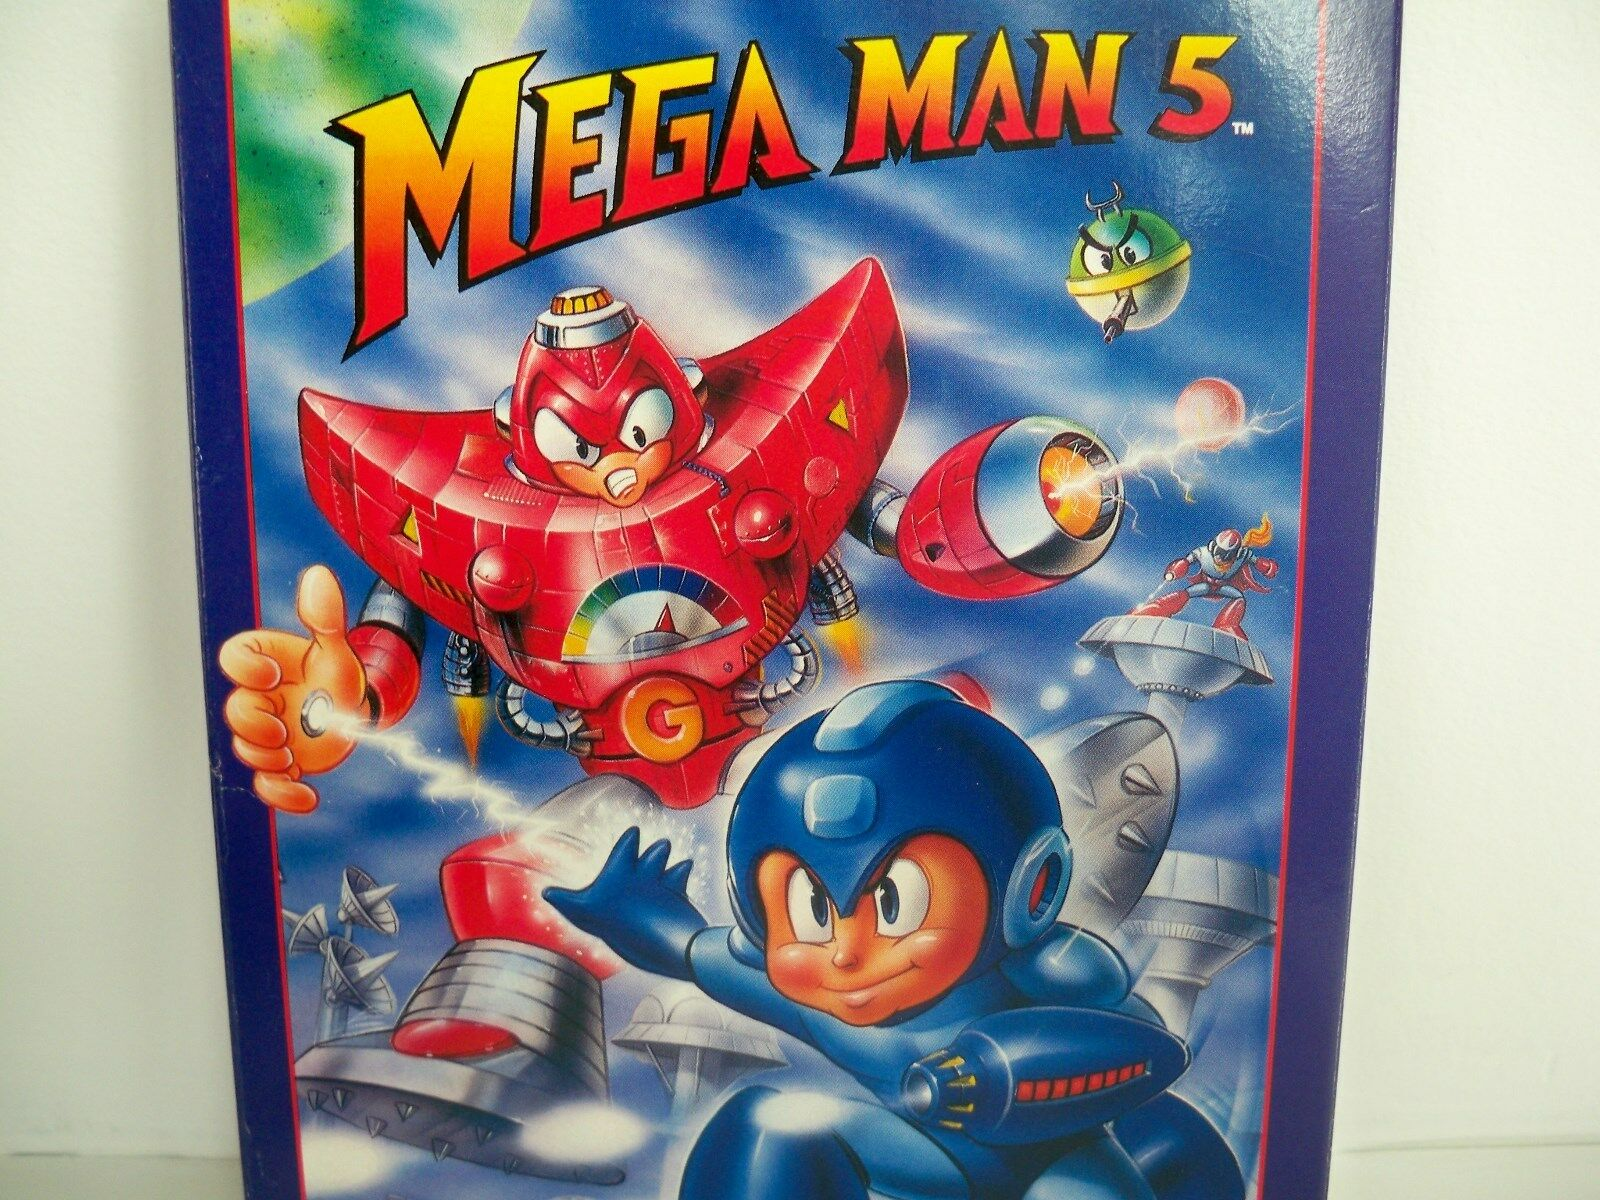 D0503122 MEGA MAN 5 NES 100% 100% 100% WORKING BOX PLASTIC CASE DUST COVER 45c4b8